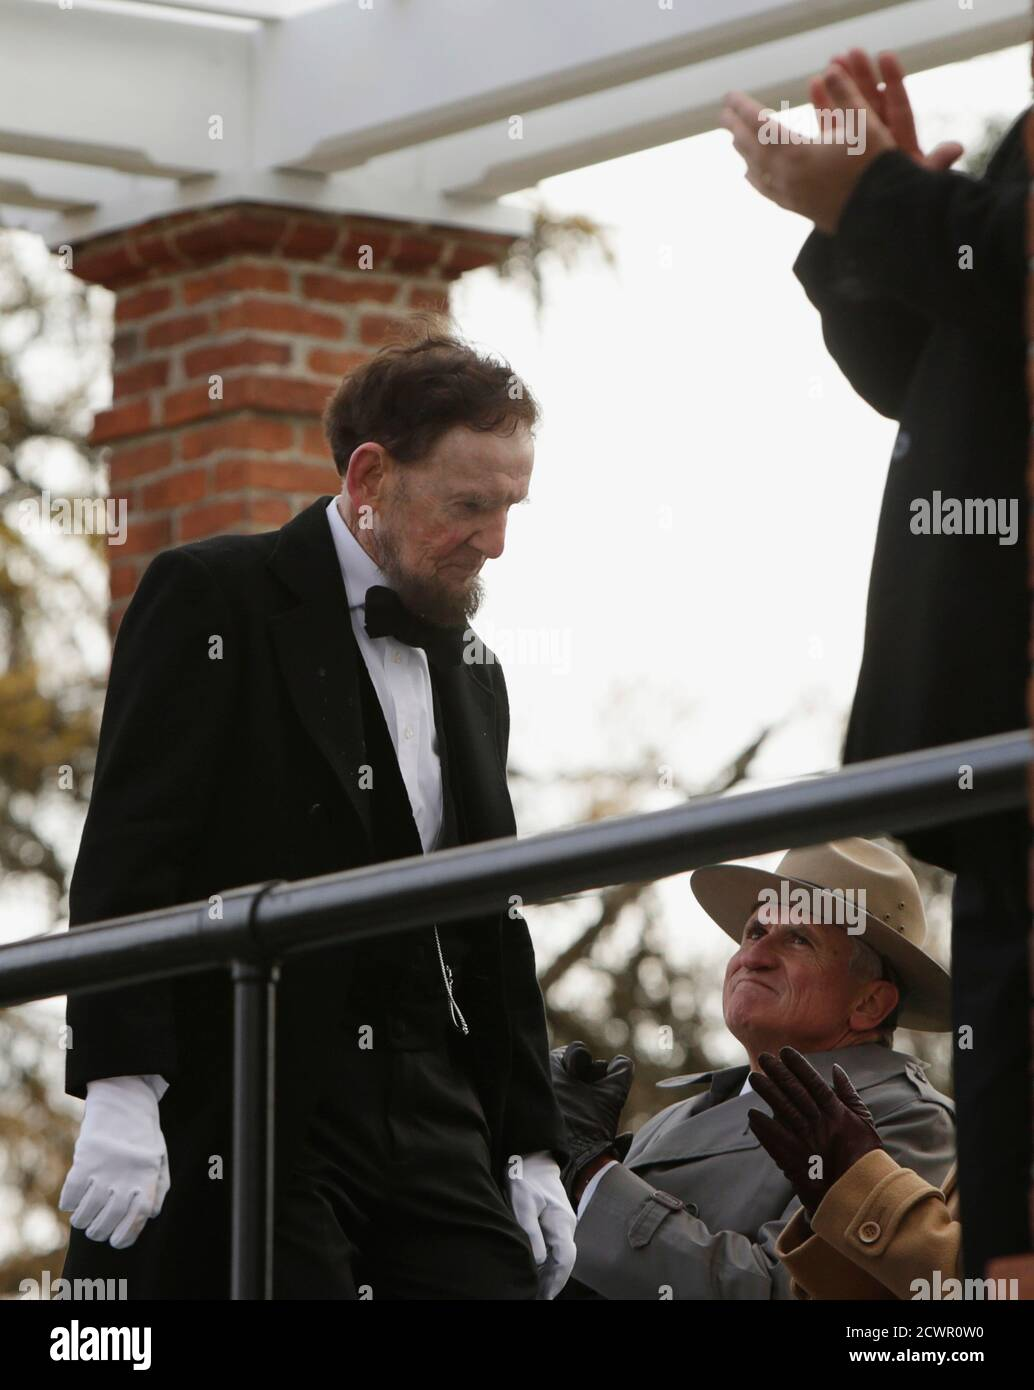 James Getty (L), portraying U.S. President Abraham Lincoln, is applauded after delivering the Gettysburg Address at the Gettysburg National Cemetery in Pennsylvania November 19, 2013. Lincoln travelled to Gettysburg in 1863 to deliver a few concluding remarks at a formal dedication. Today marks the 150th anniversary of  Lincoln's famous two-minute speech.  REUTERS/Gary Cameron    (UNITED STATES - Tags: ANNIVERSARY POLITICS) Stock Photo